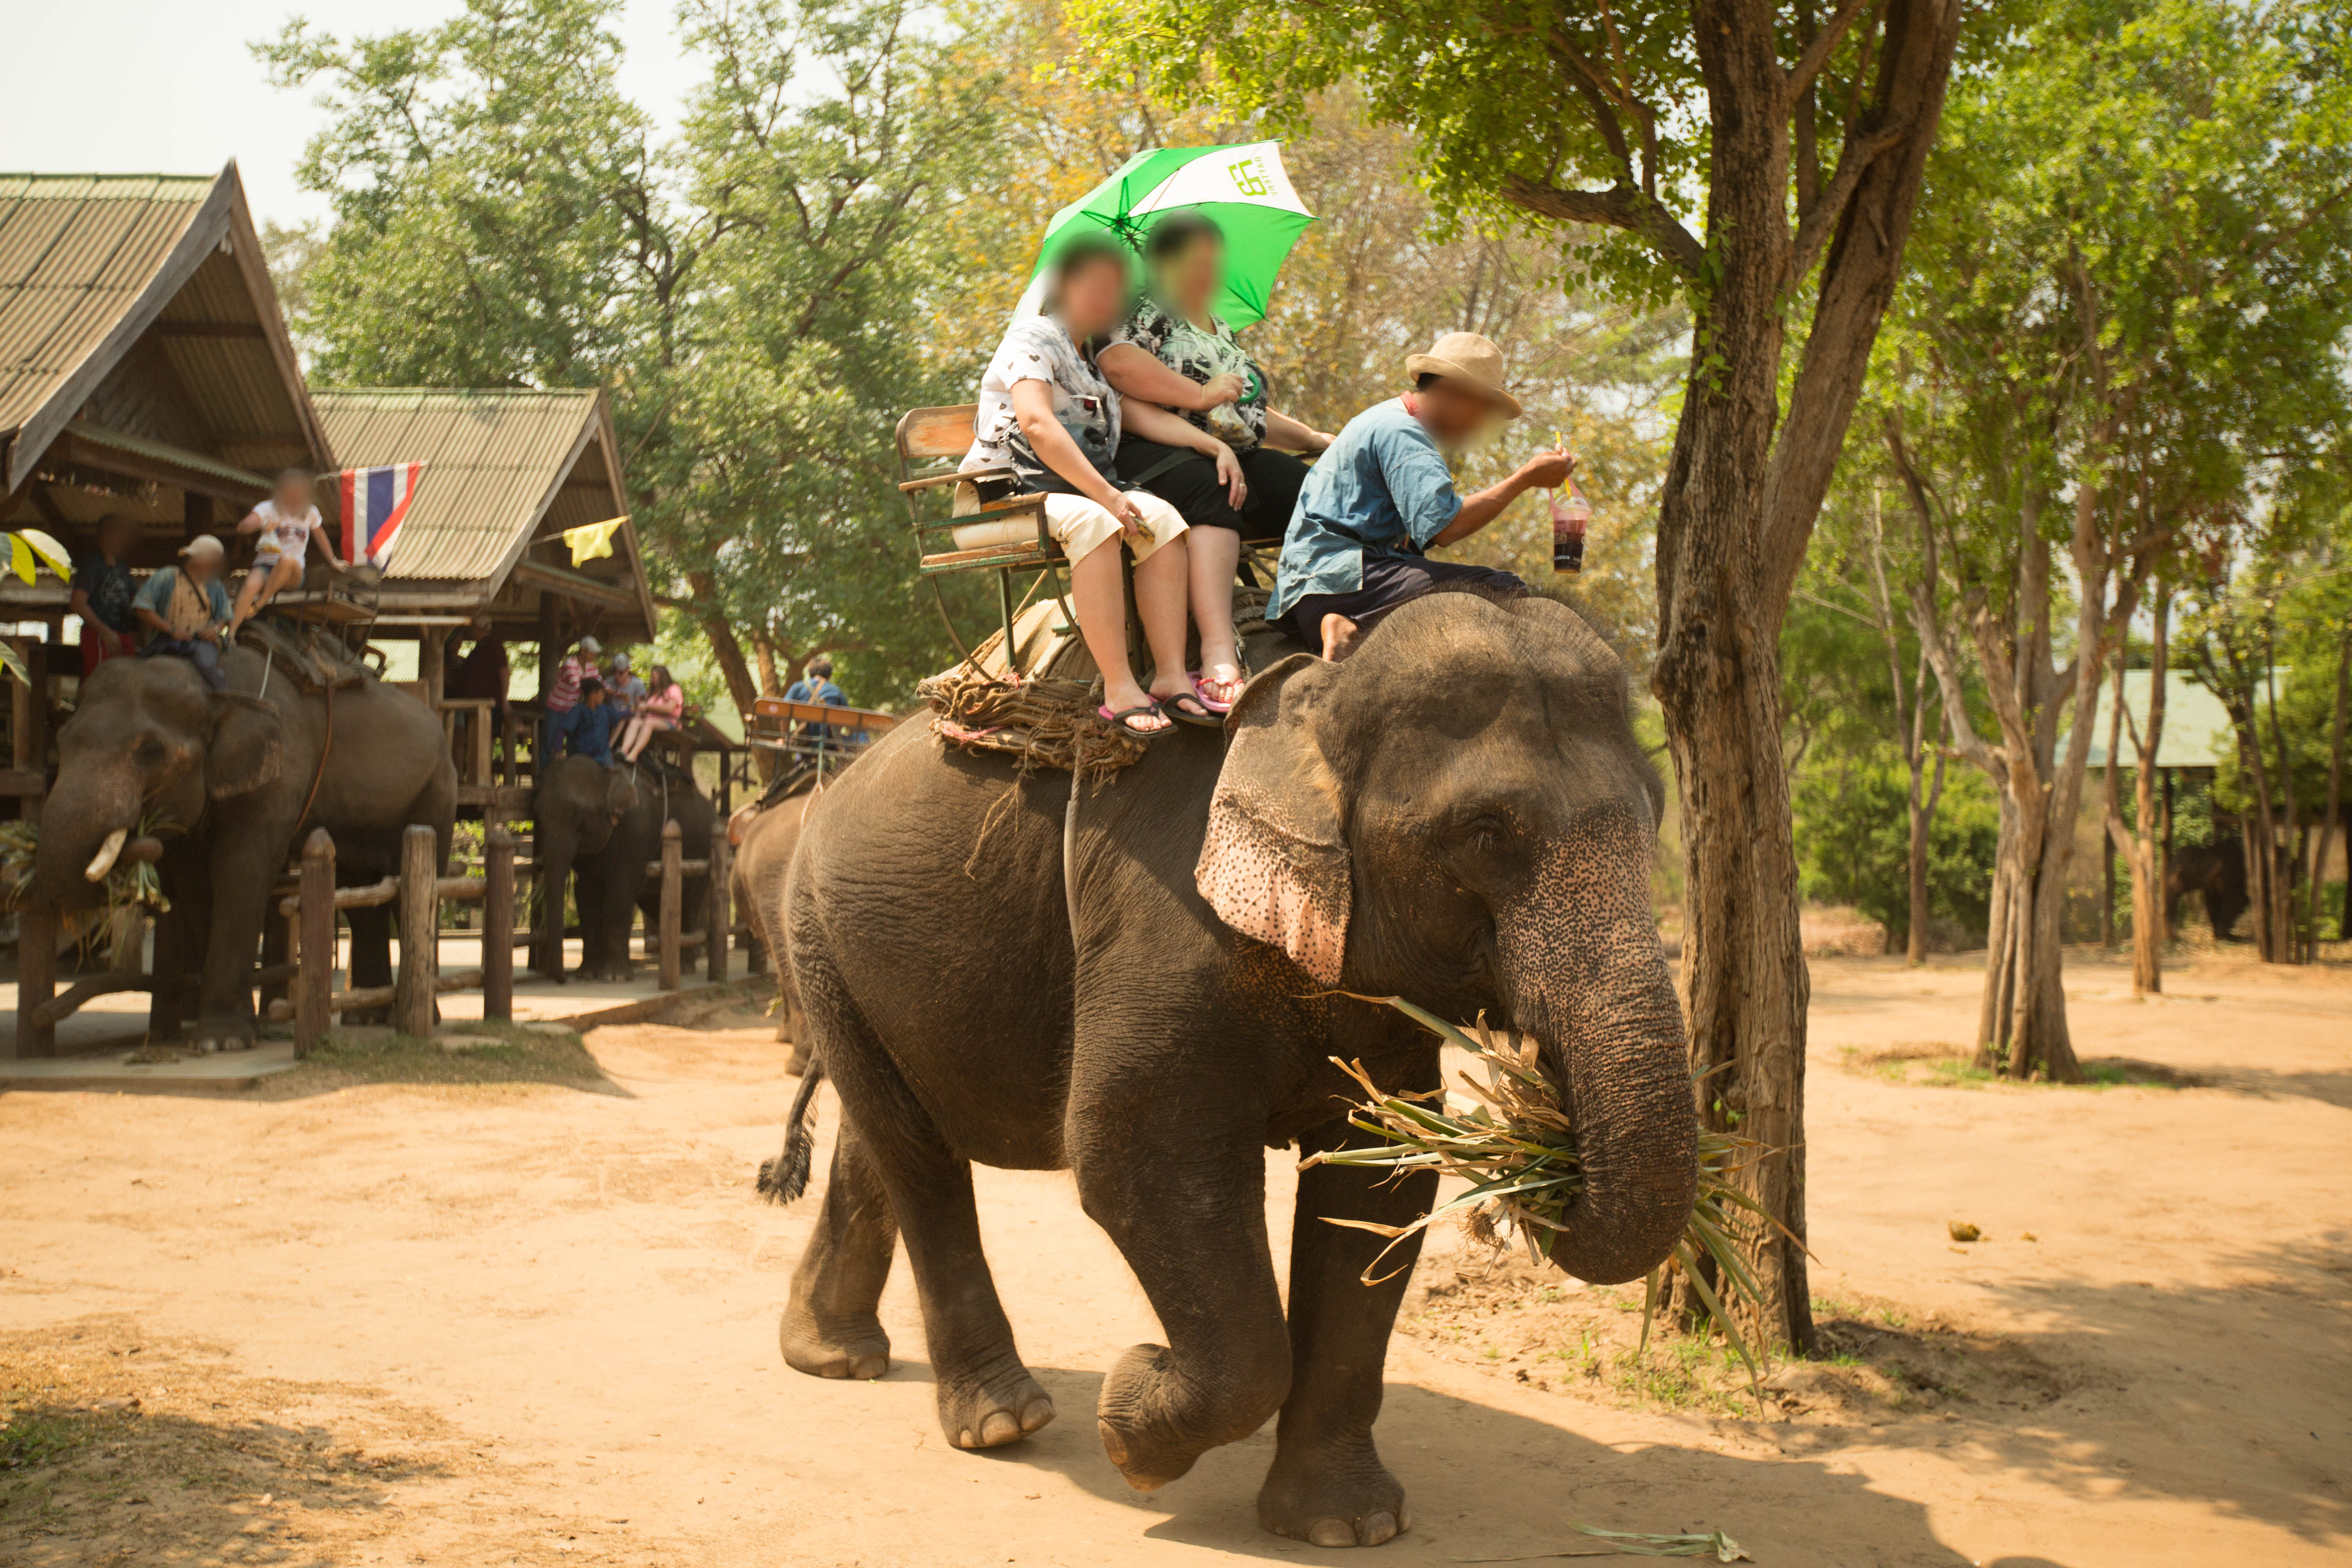 Computer Science Essays The Cruel Captive Elephant Industry  Animals Used For Entertainment   Issues  Peta Asia Essay In English For Students also Topics Of Essays For High School Students The Cruel Captive Elephant Industry  Animals Used For Entertainment  Healthcare Essay Topics